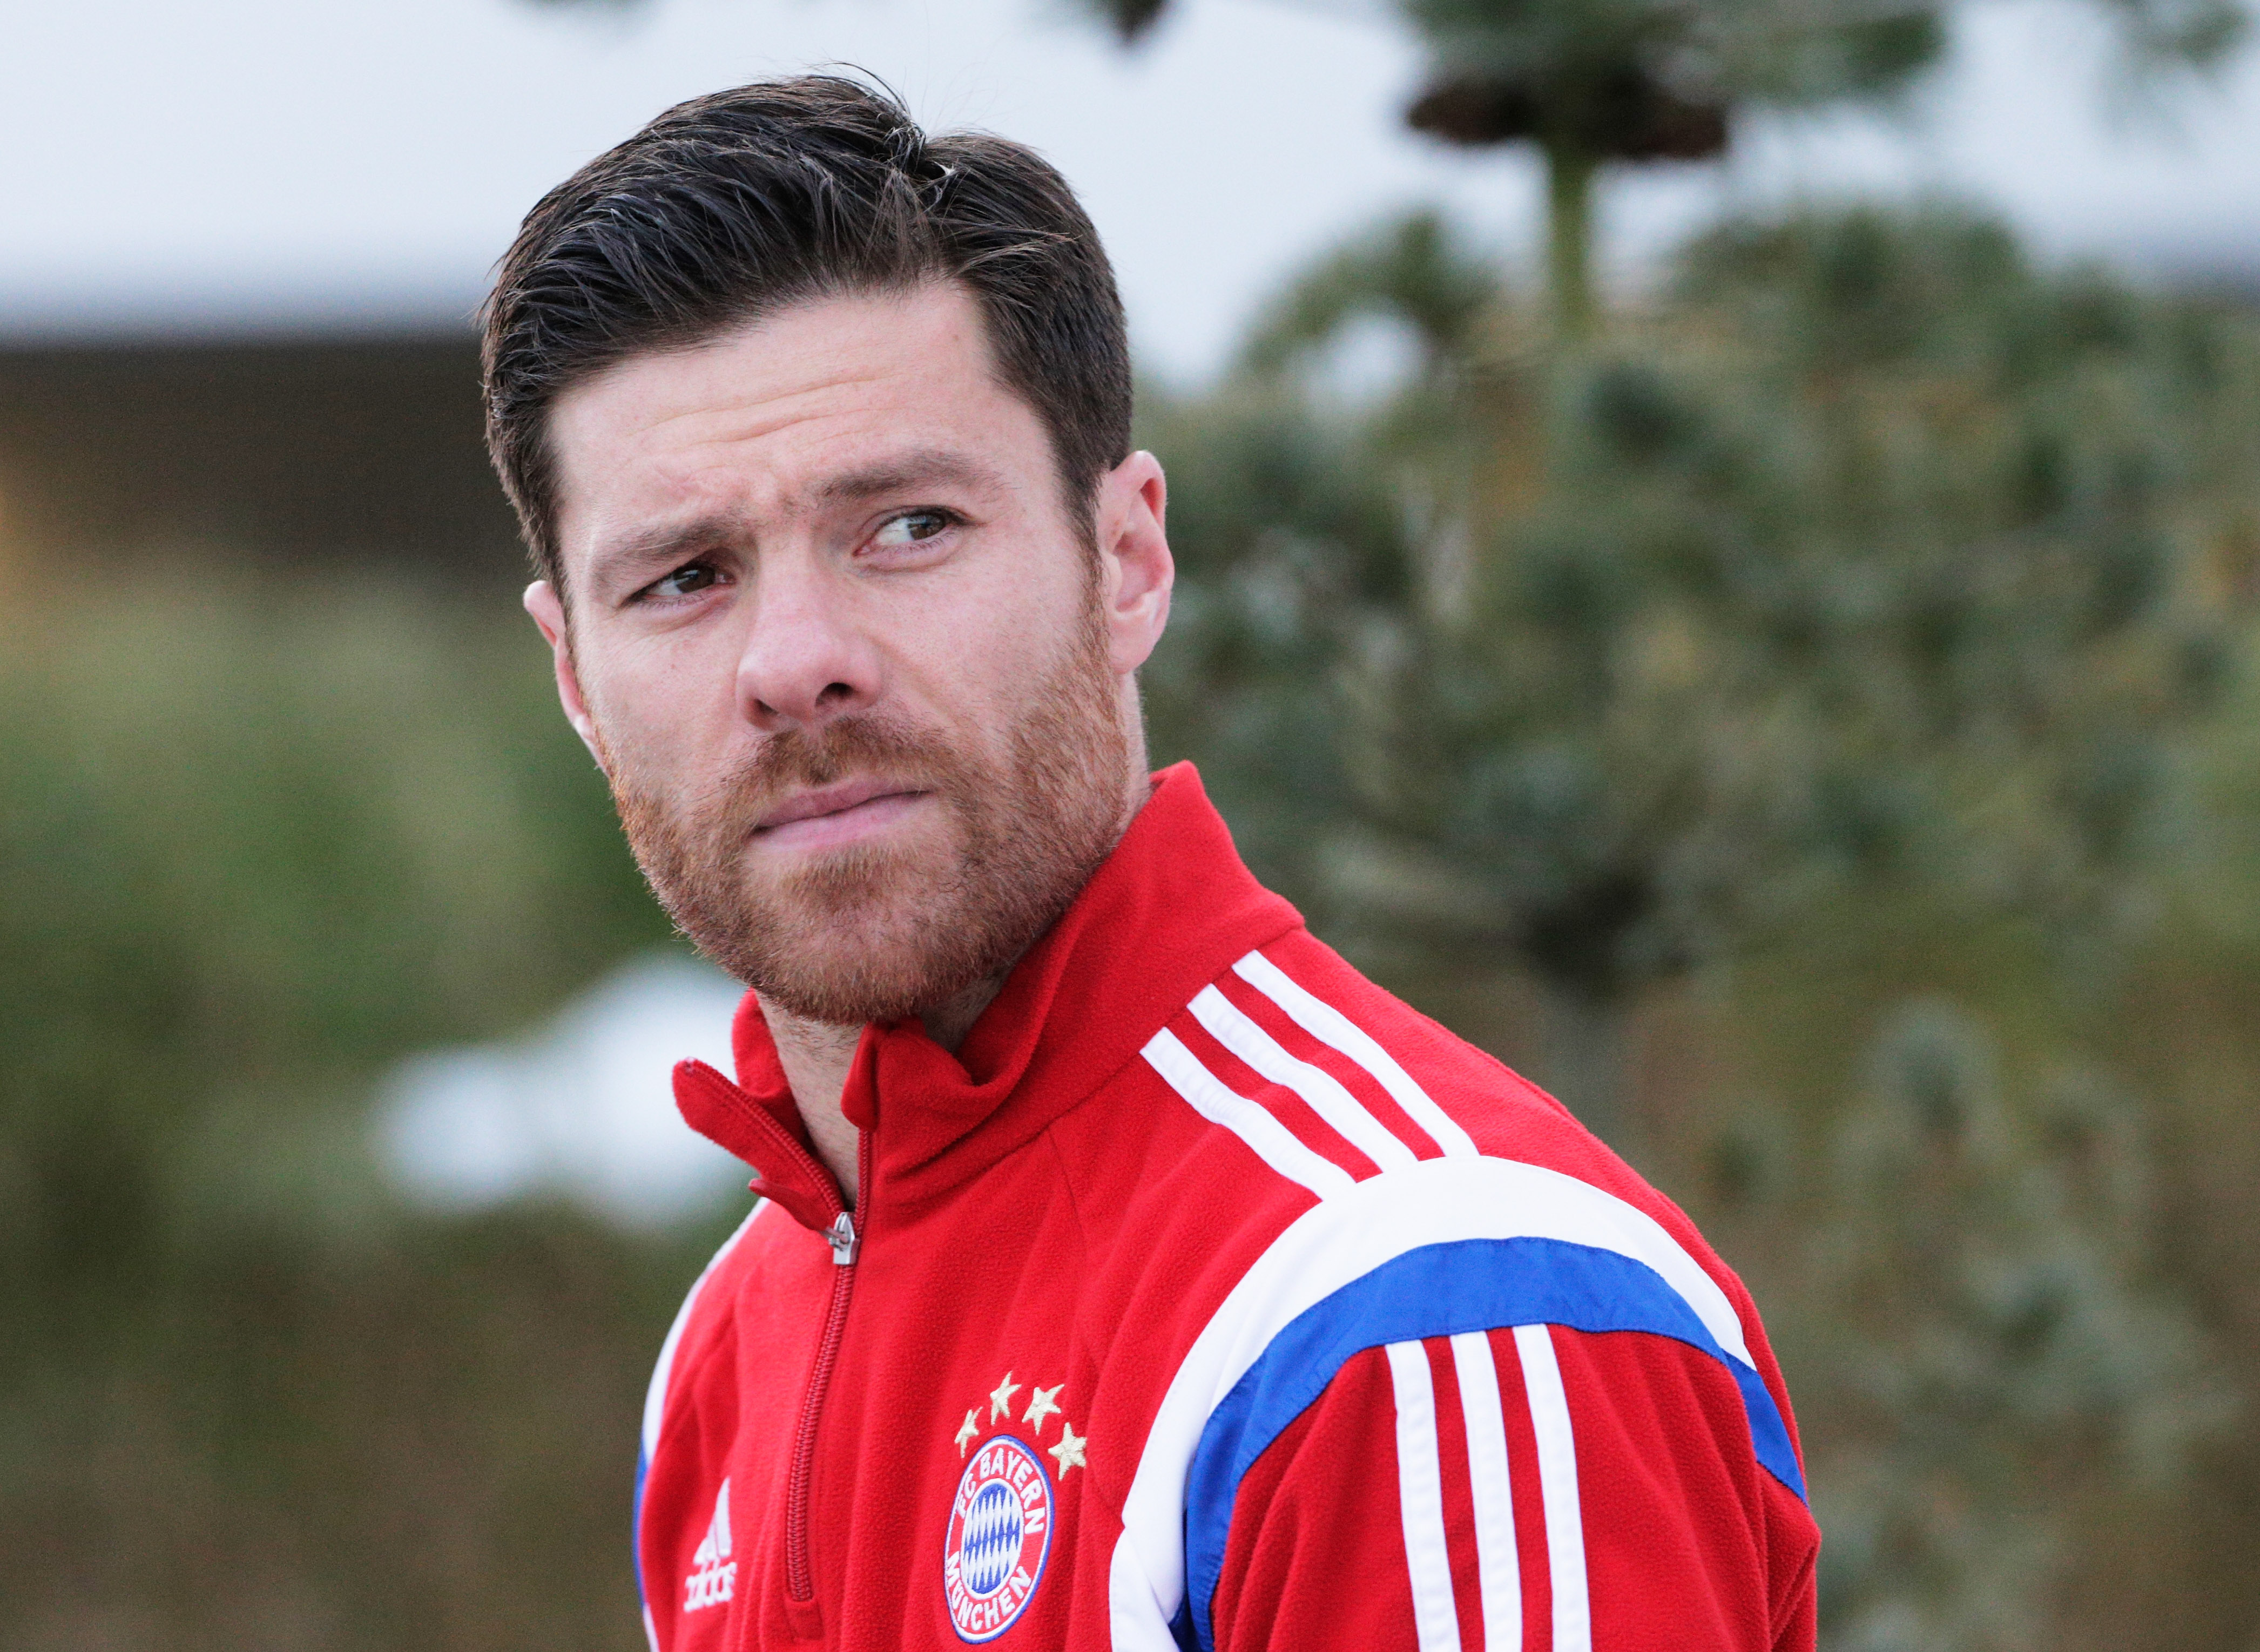 Bayern Munich midfielder Xabi Alonso set to retire at the end of the season